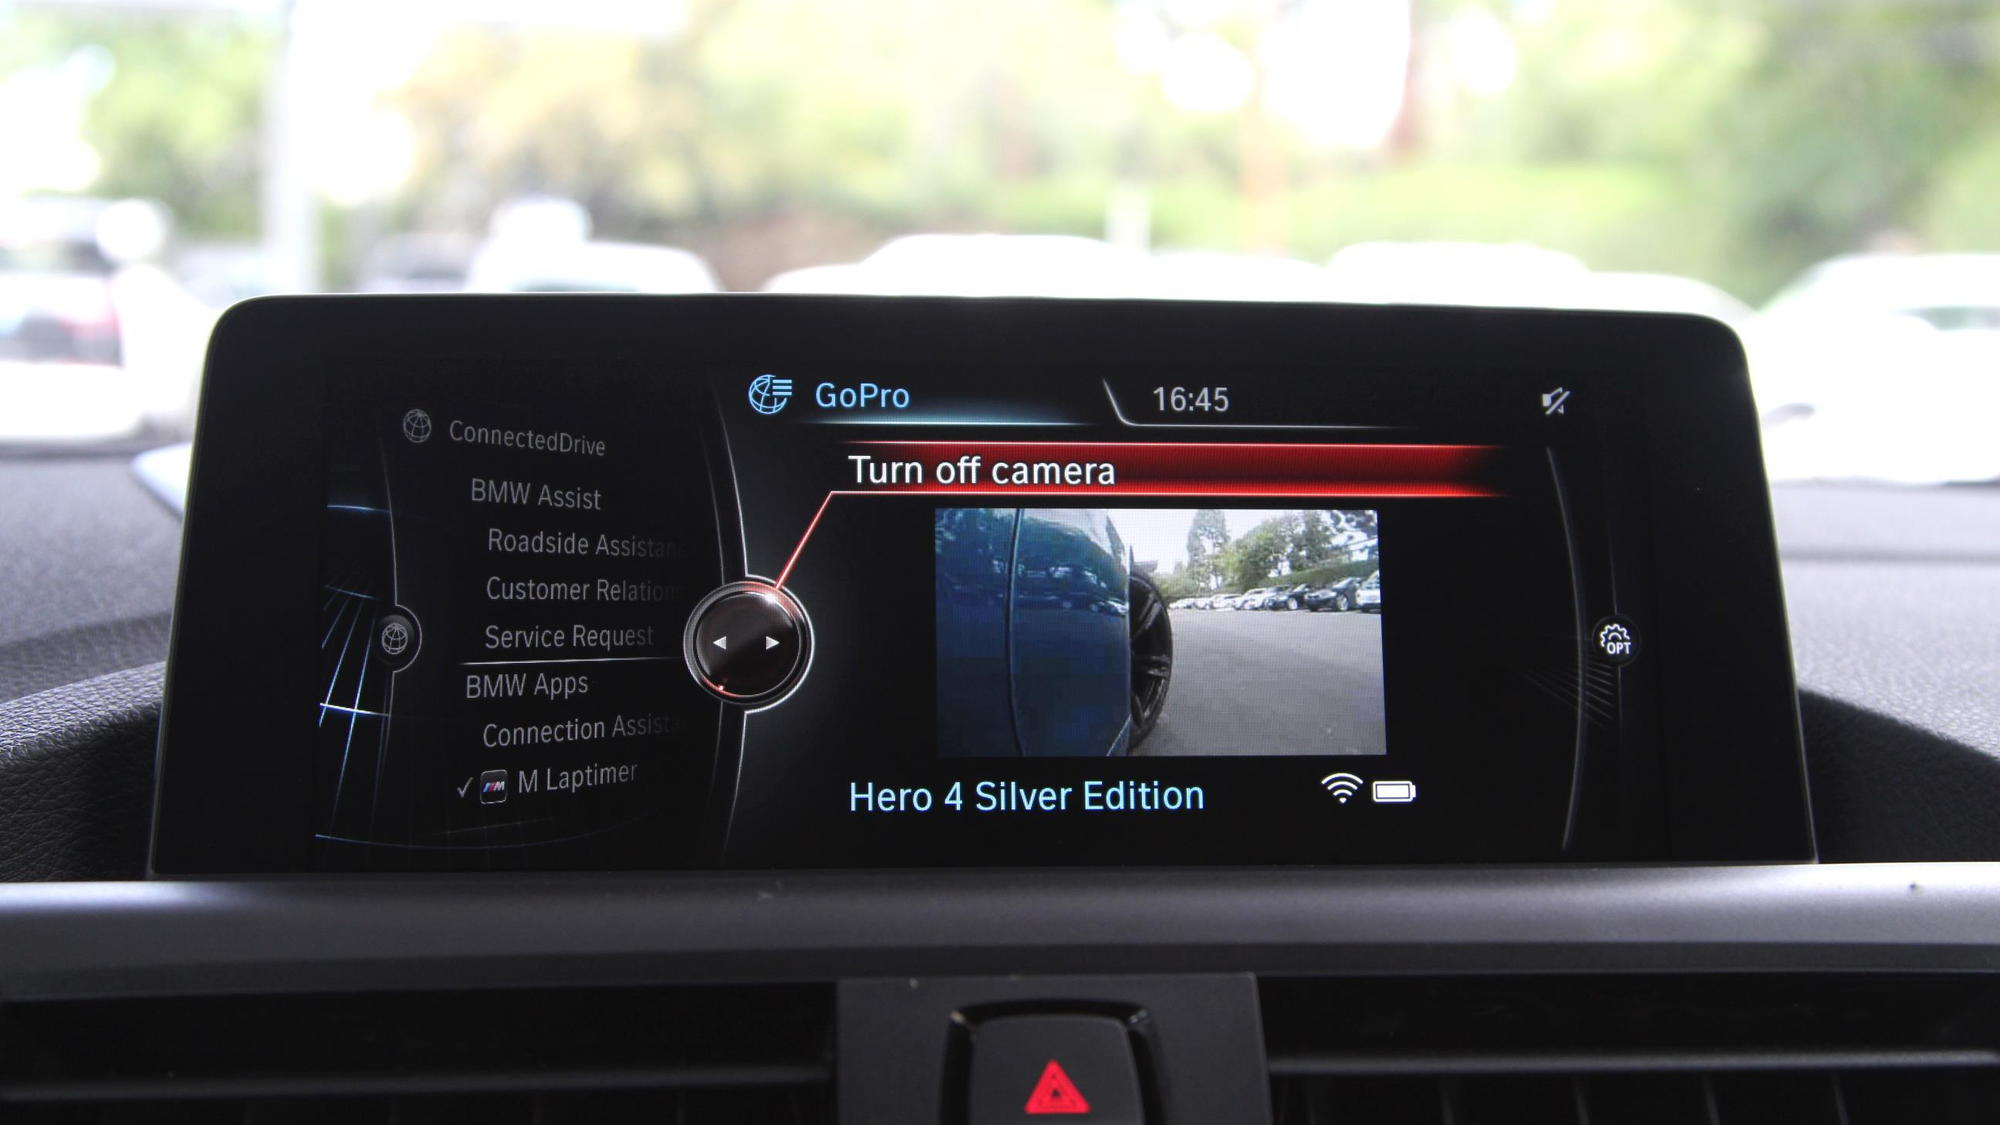 BMW M Laptimer app with GoPro integration